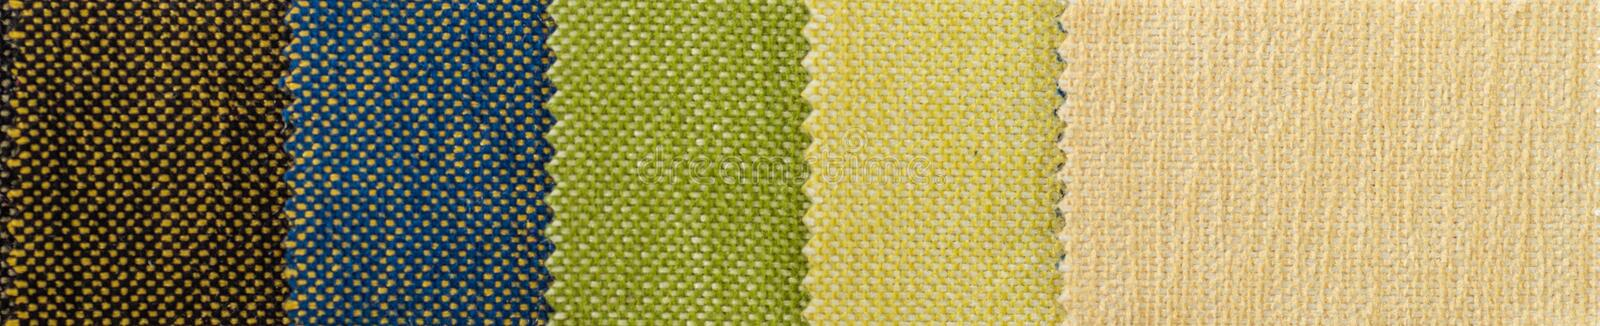 Catalog of multicolored cloth from matting fabric texture background, silk fabric texture. Textile industry background stock images